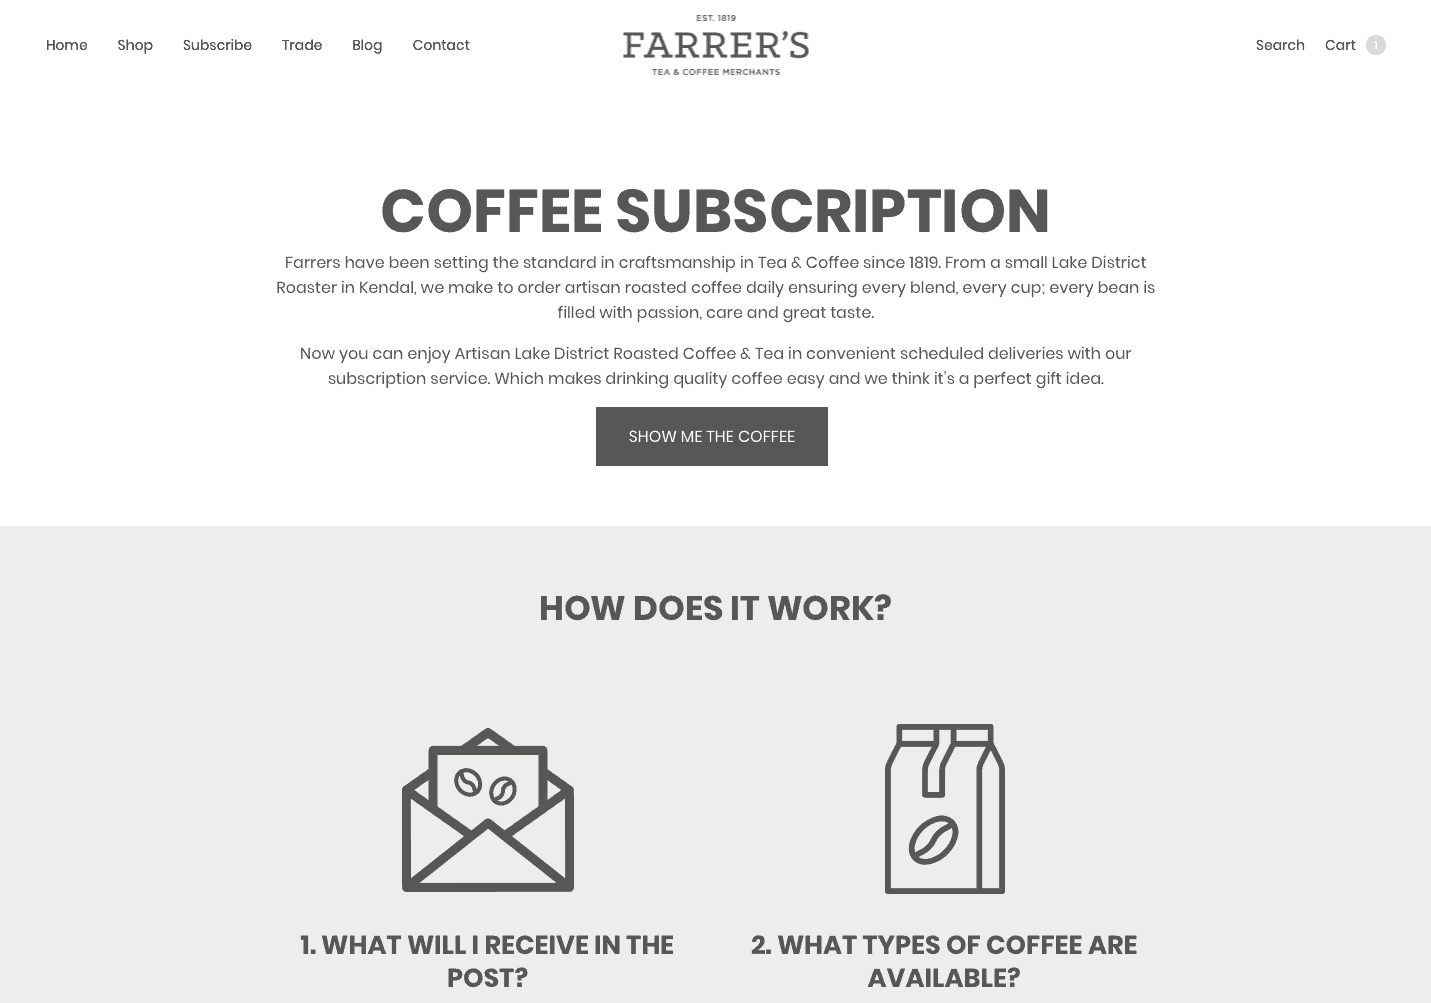 farrers-coffee-subscription-landing